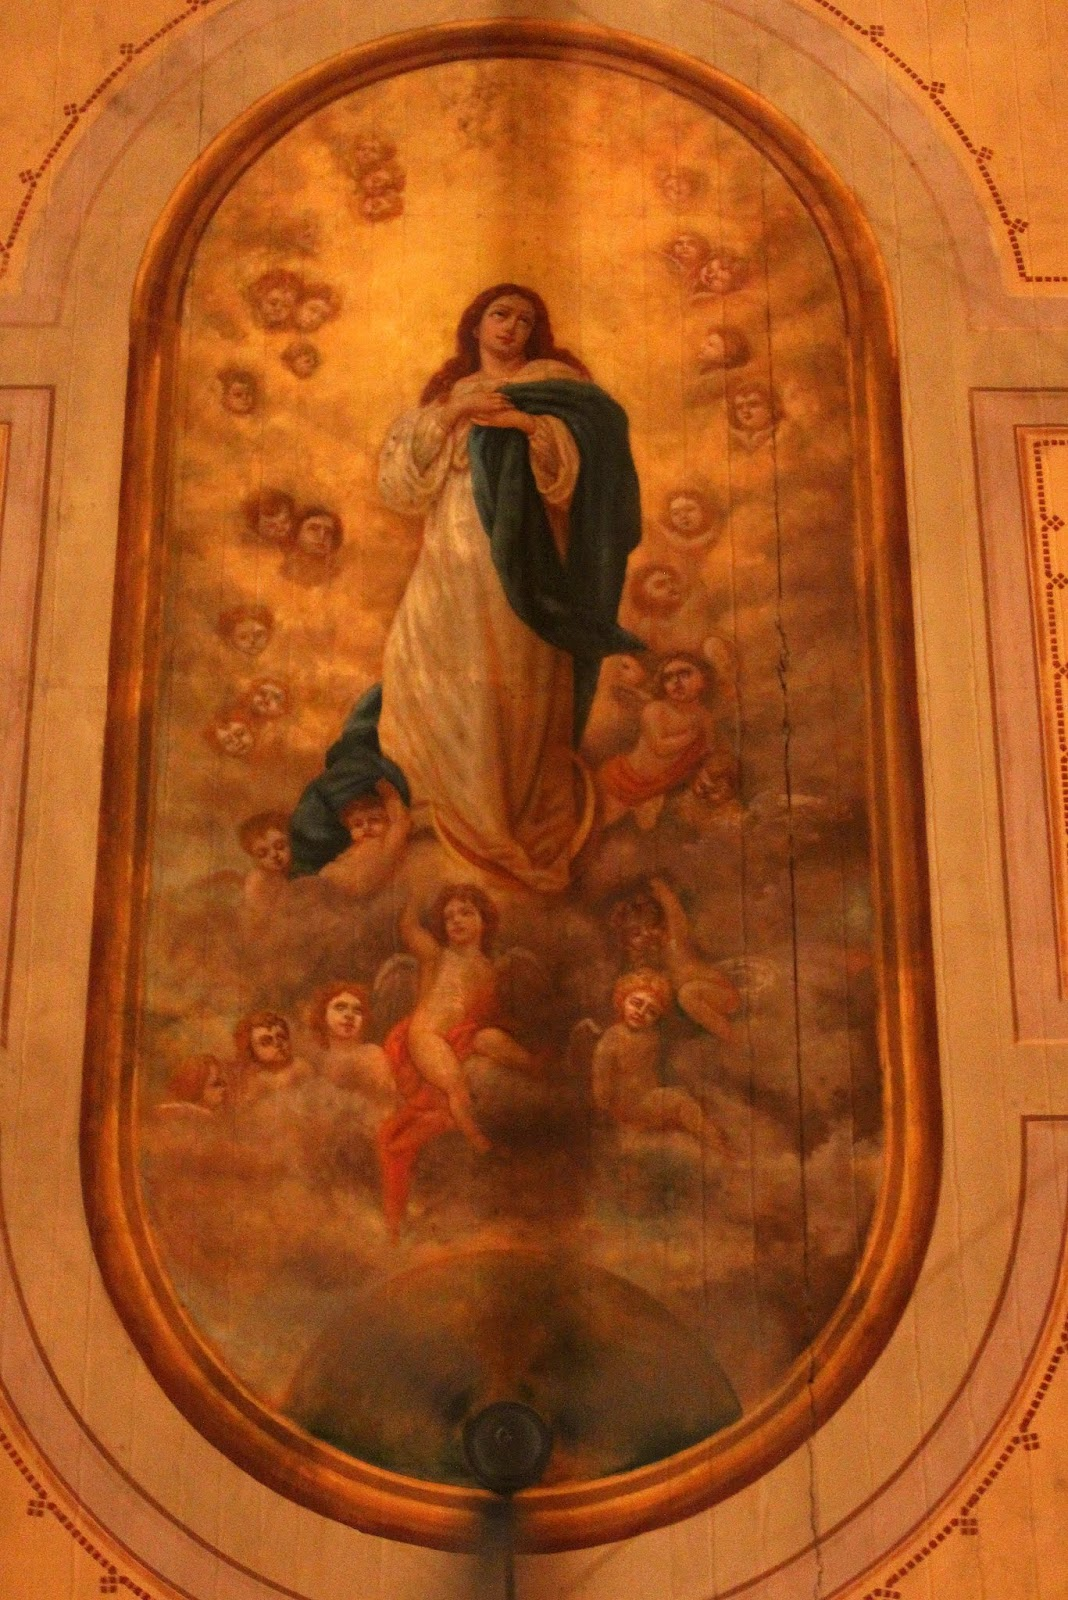 View of Central ceiling mural hovers above the pews